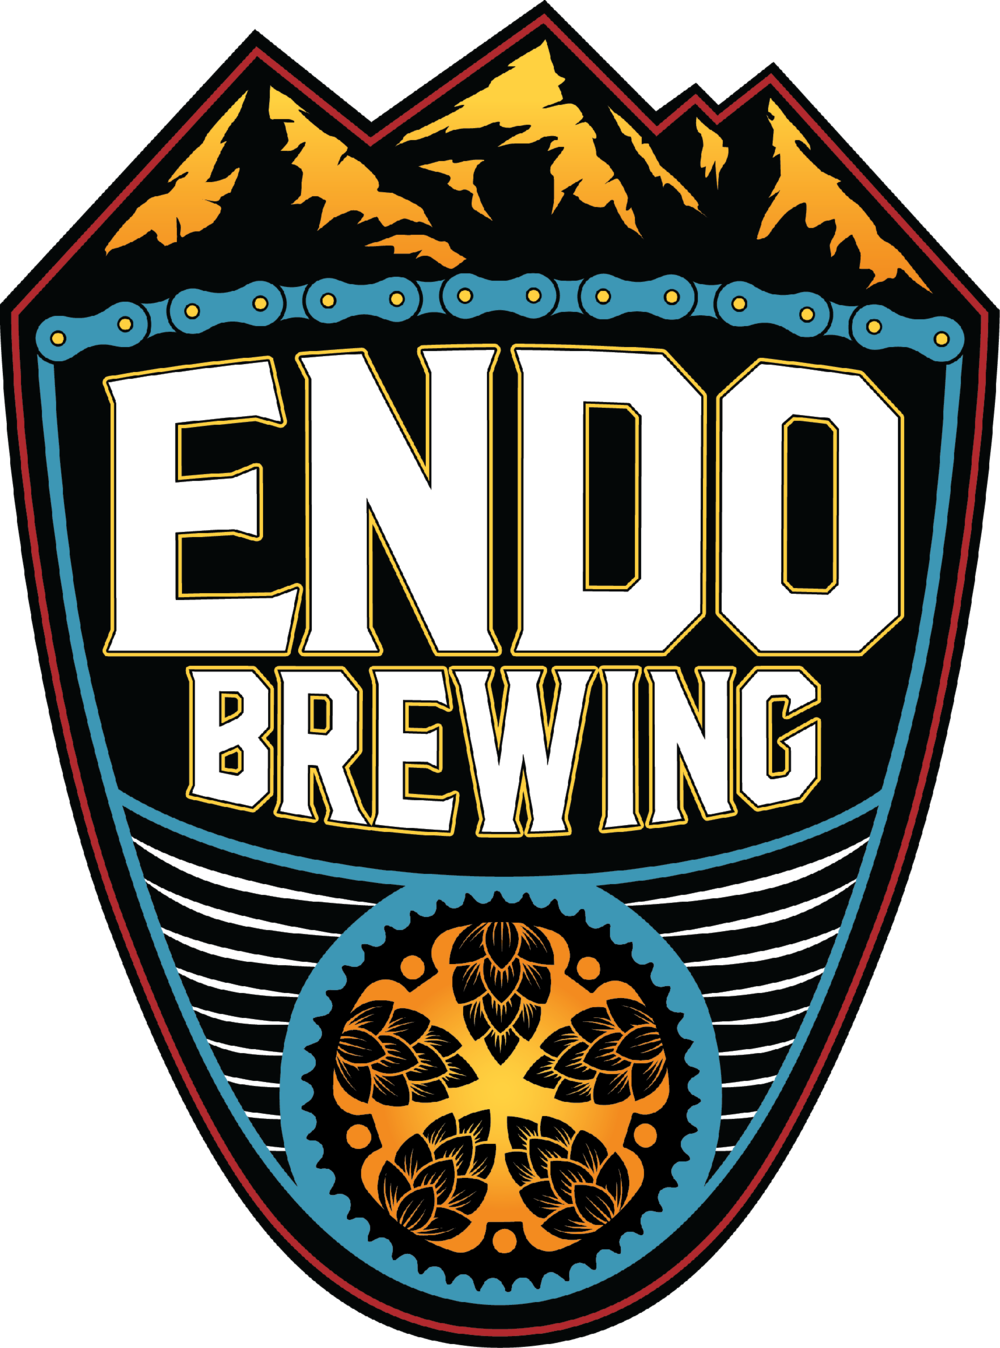 Sponsorded by Endo Brewing - Serving quality beer